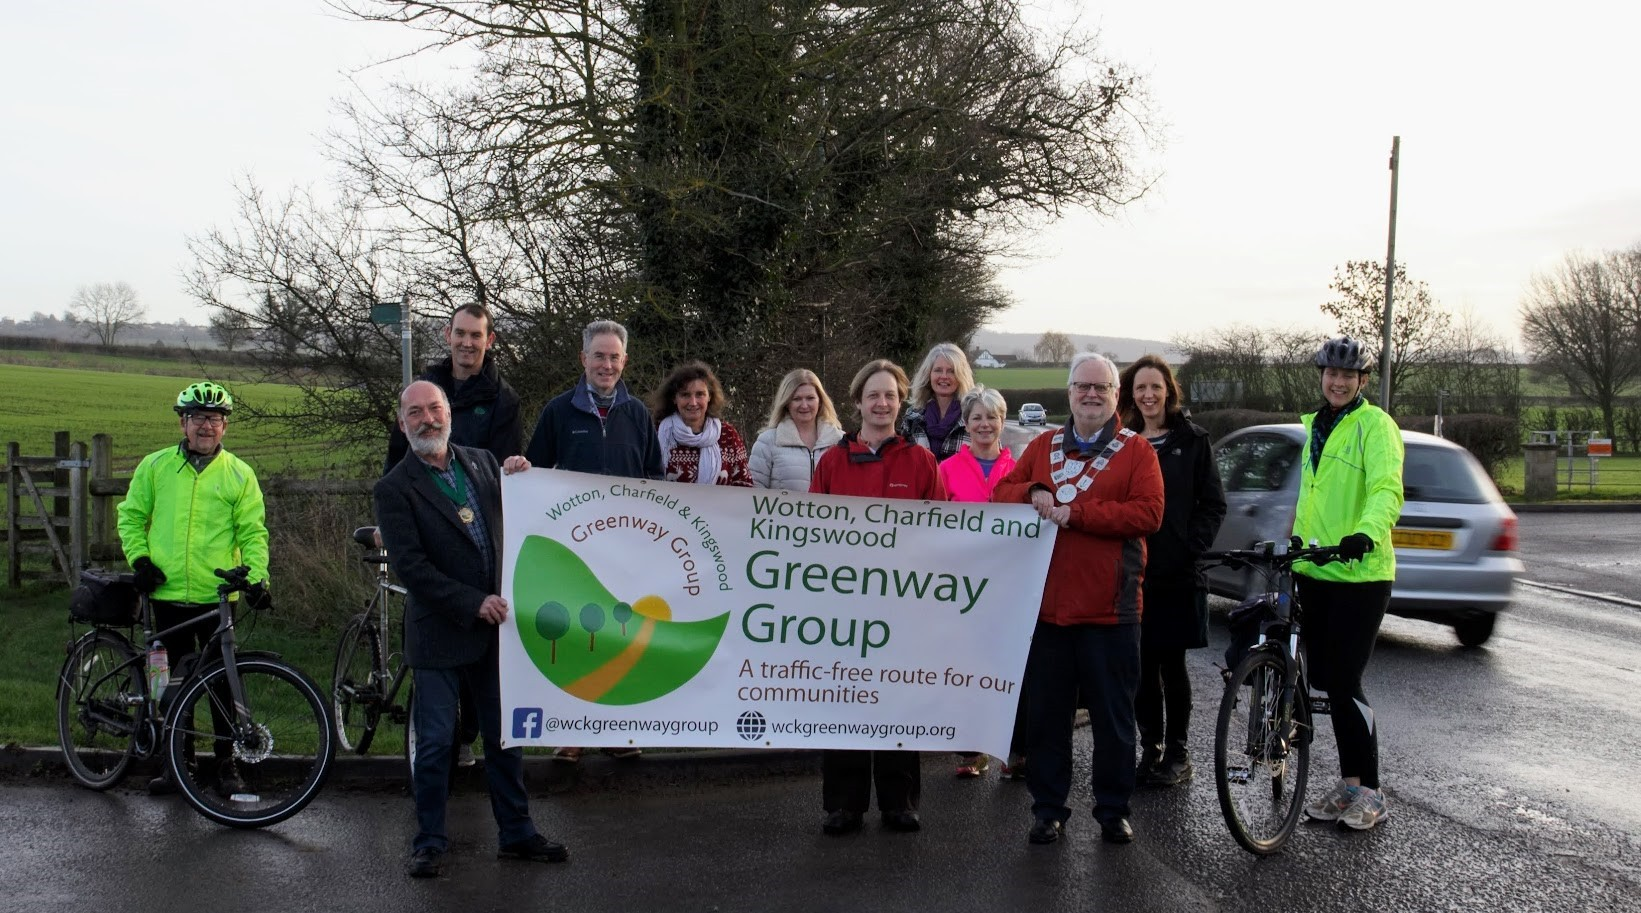 Greenway group, including the Mayor of Wotton, Cllr Paul Smith, and Chair of Charfield Parish Council, Cllr Mark Rosher